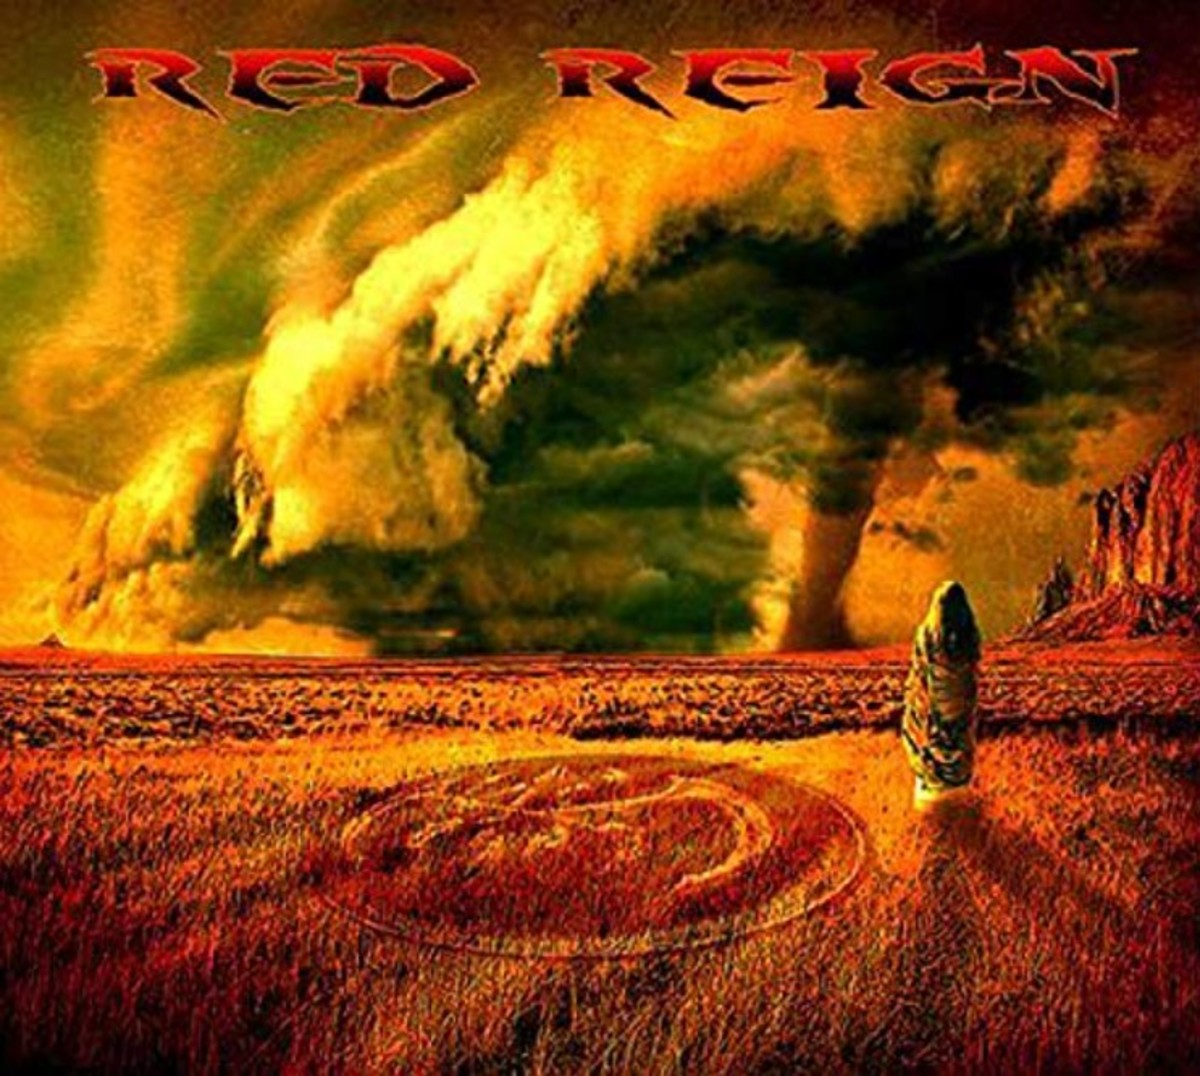 Red Reign EP